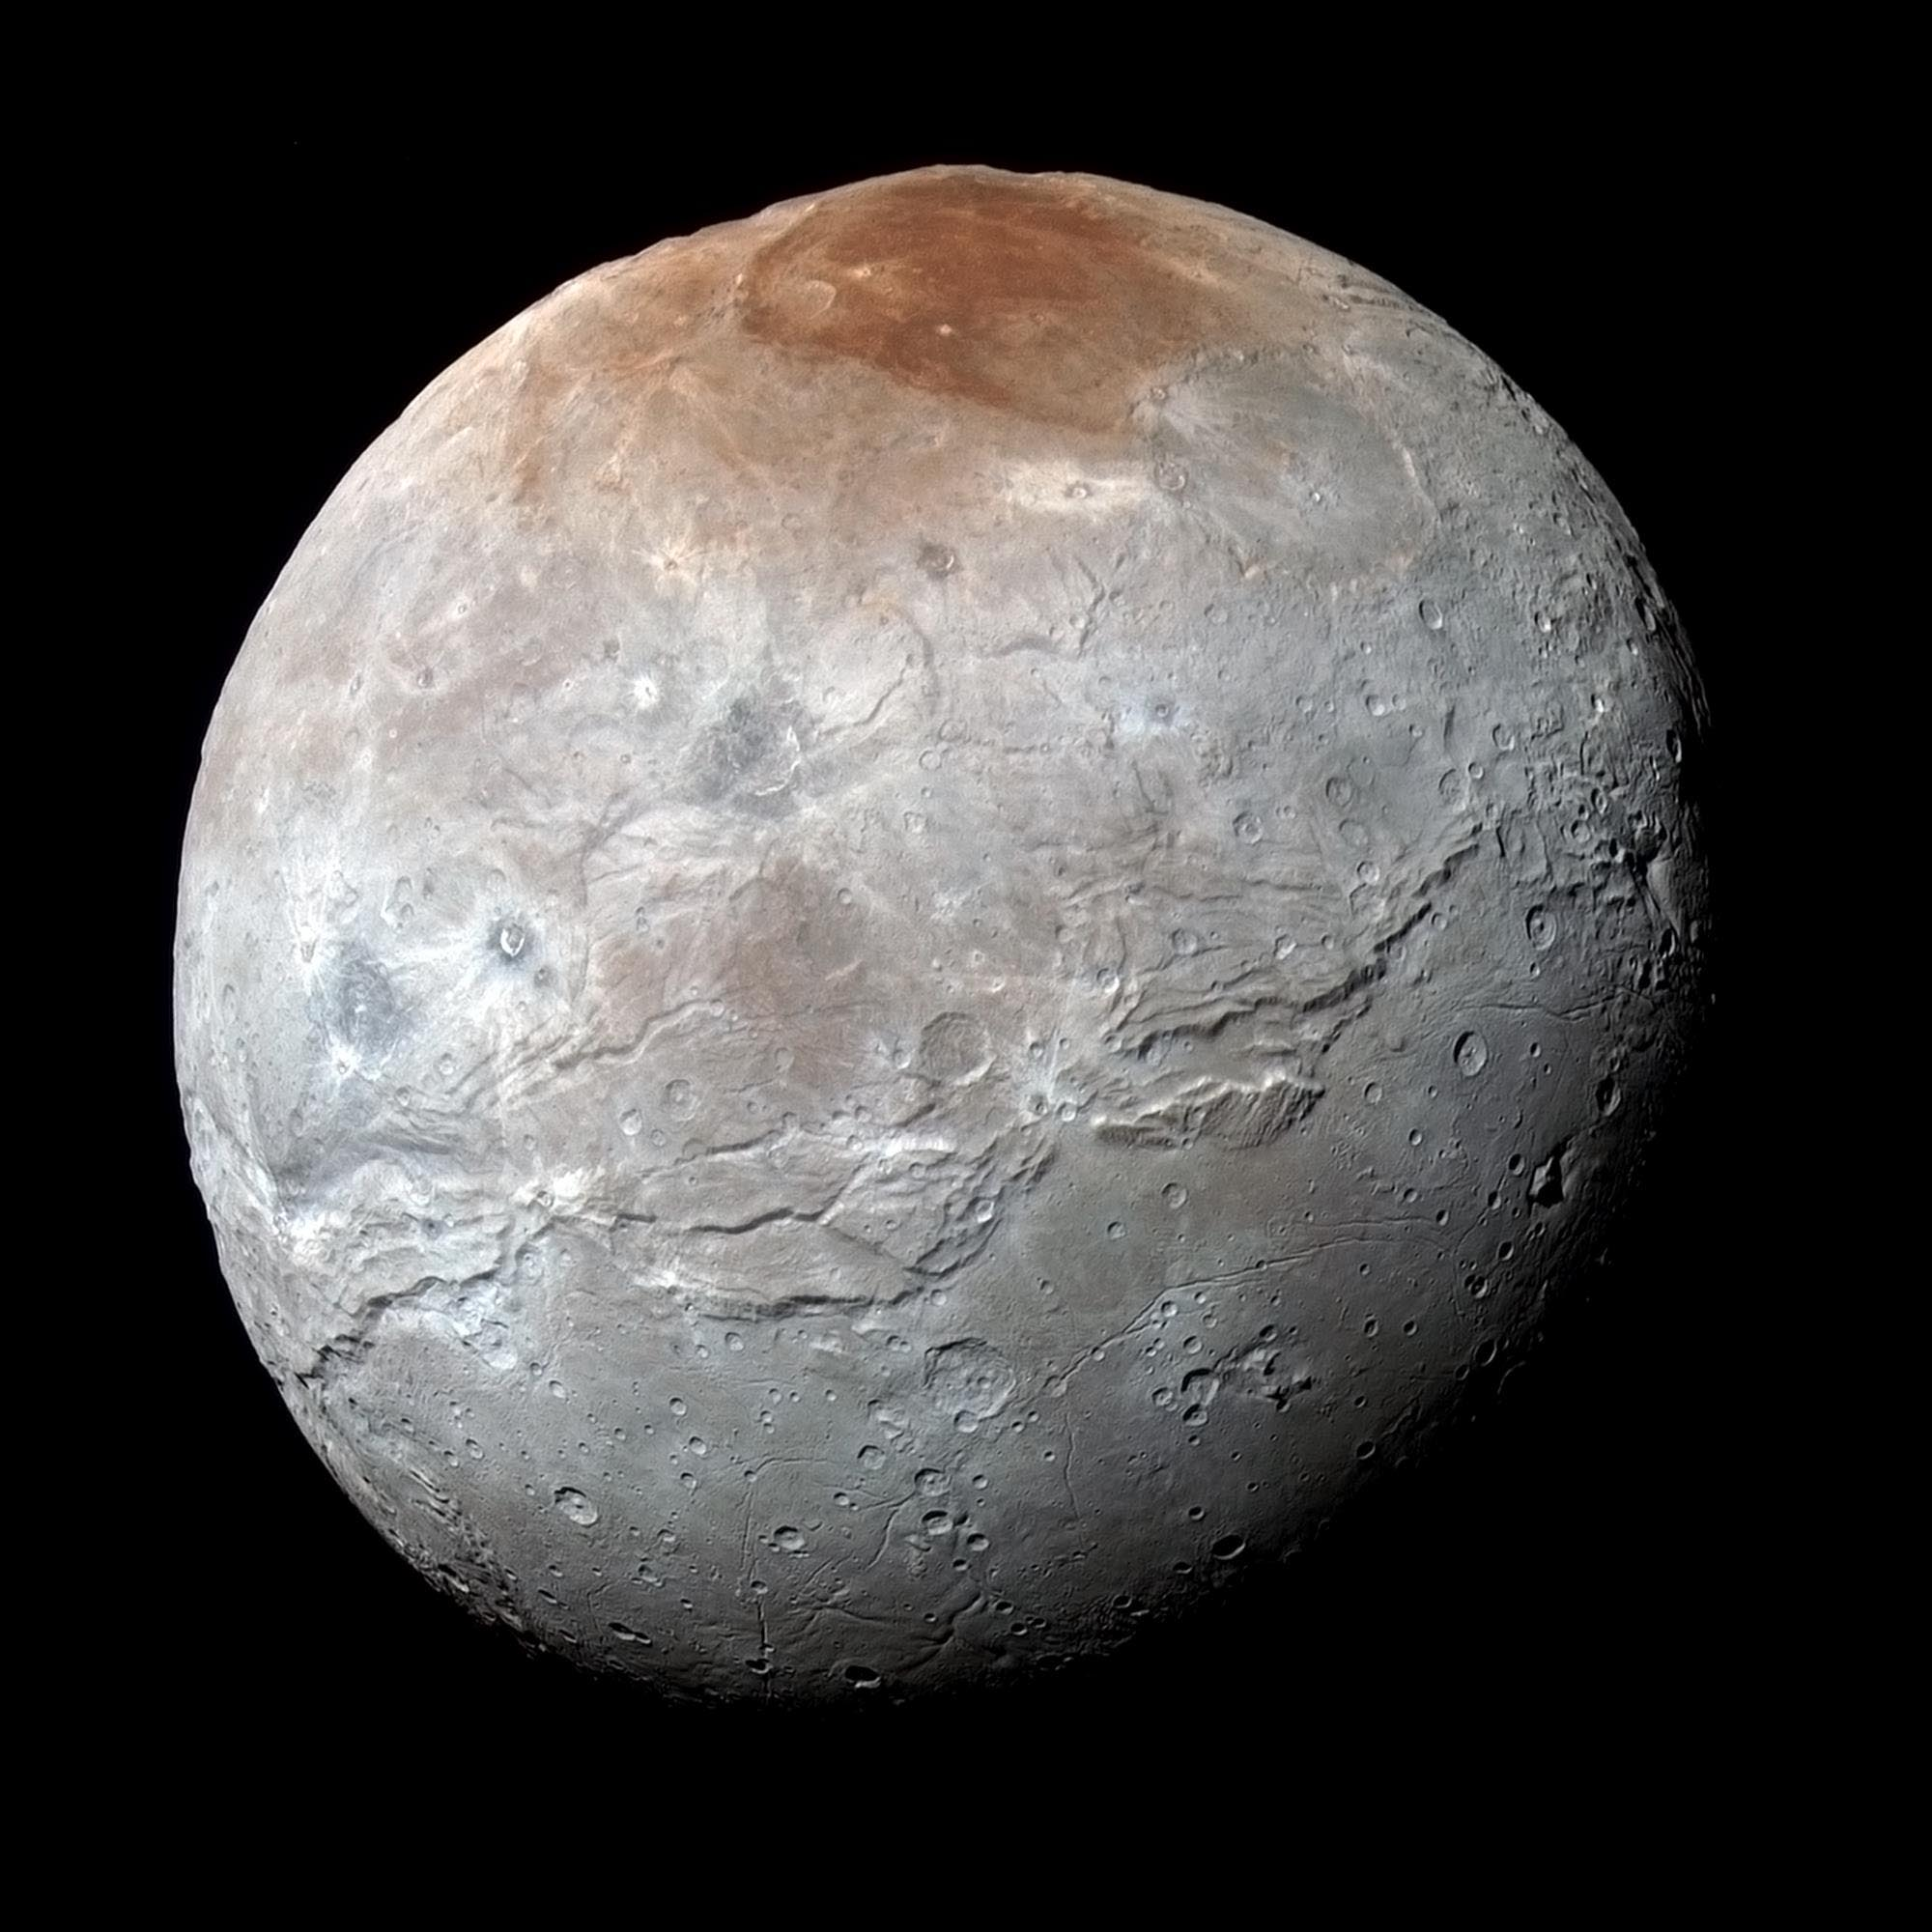 This composite of enhanced color images of Pluto (lower right) and Charon (upper left), was taken by NASA's New Horizons spacecraft as it passed through the Pluto system on July 14, 2015. This image highlights the striking differences between Pluto and Charon. The color and brightness of both Pluto and Charon have been processed identically to allow direct comparison of their surface properties, and to highlight the similarity between Charon's polar red terrain and Pluto's equatorial red terrain. Pluto and Charon are shown with approximately correct relative sizes, but their true separation is not to scale. The image combines blue, red and infrared images taken by the spacecraft's Ralph/Multispectral Visual Imaging Camera (MVIC). Credits: NASA/JHUAPL/SwRI.